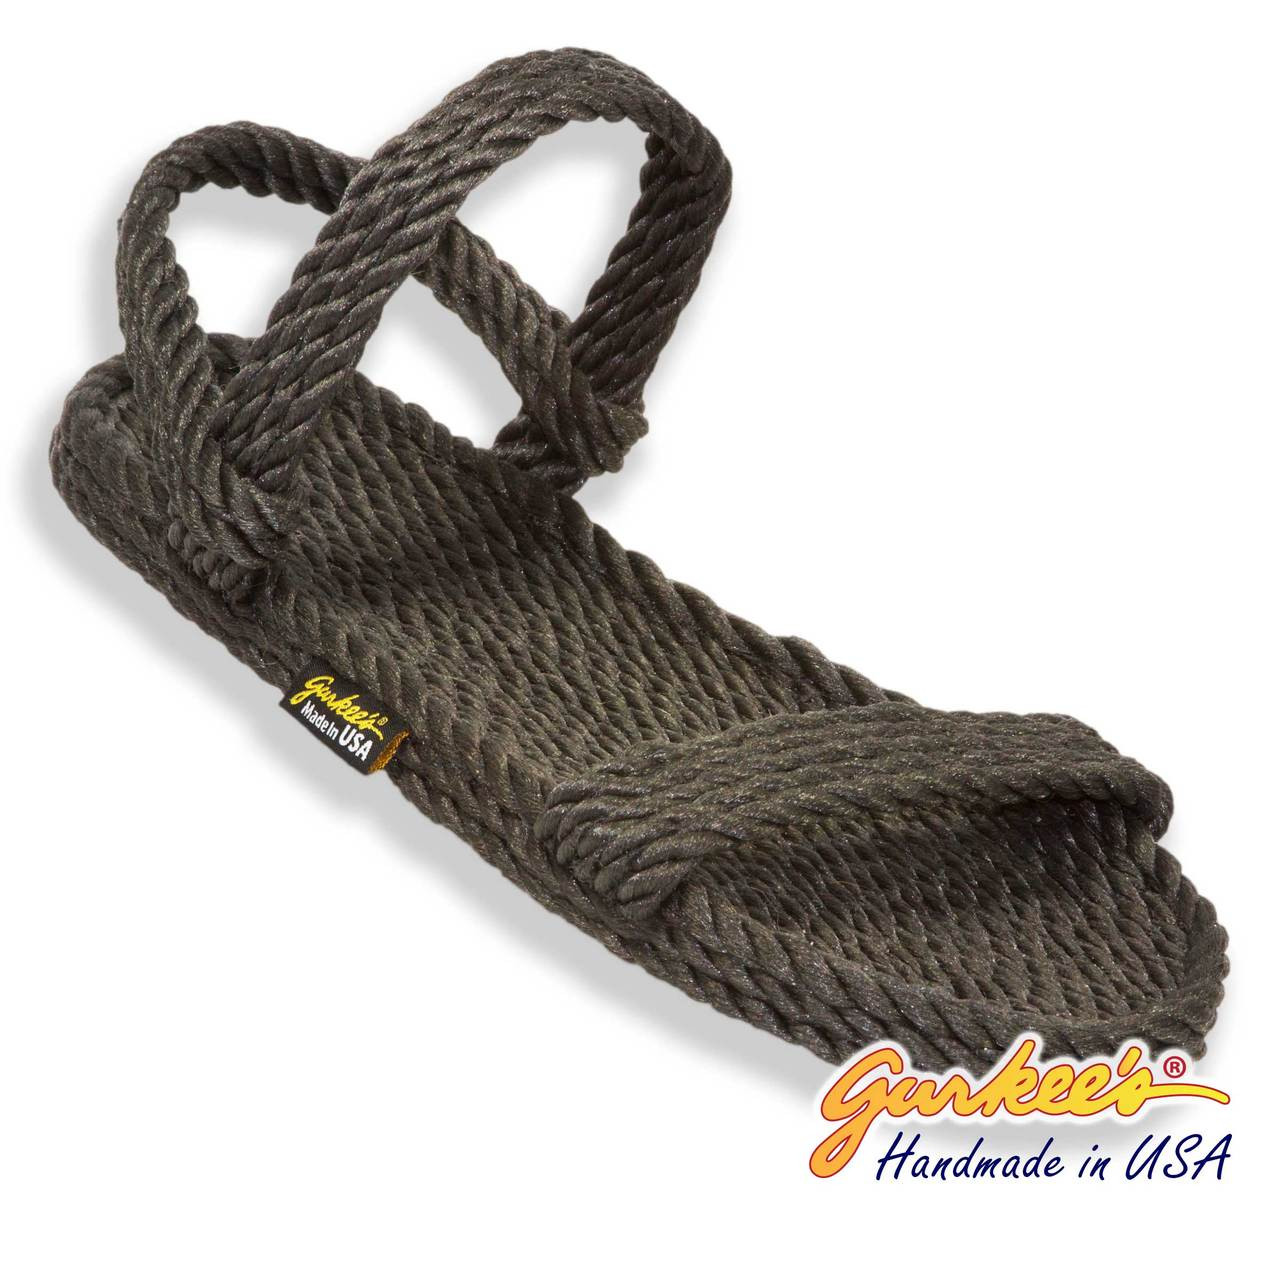 35d338a33cde Classic Montego Charcoal Rope Sandals - Gurkee s